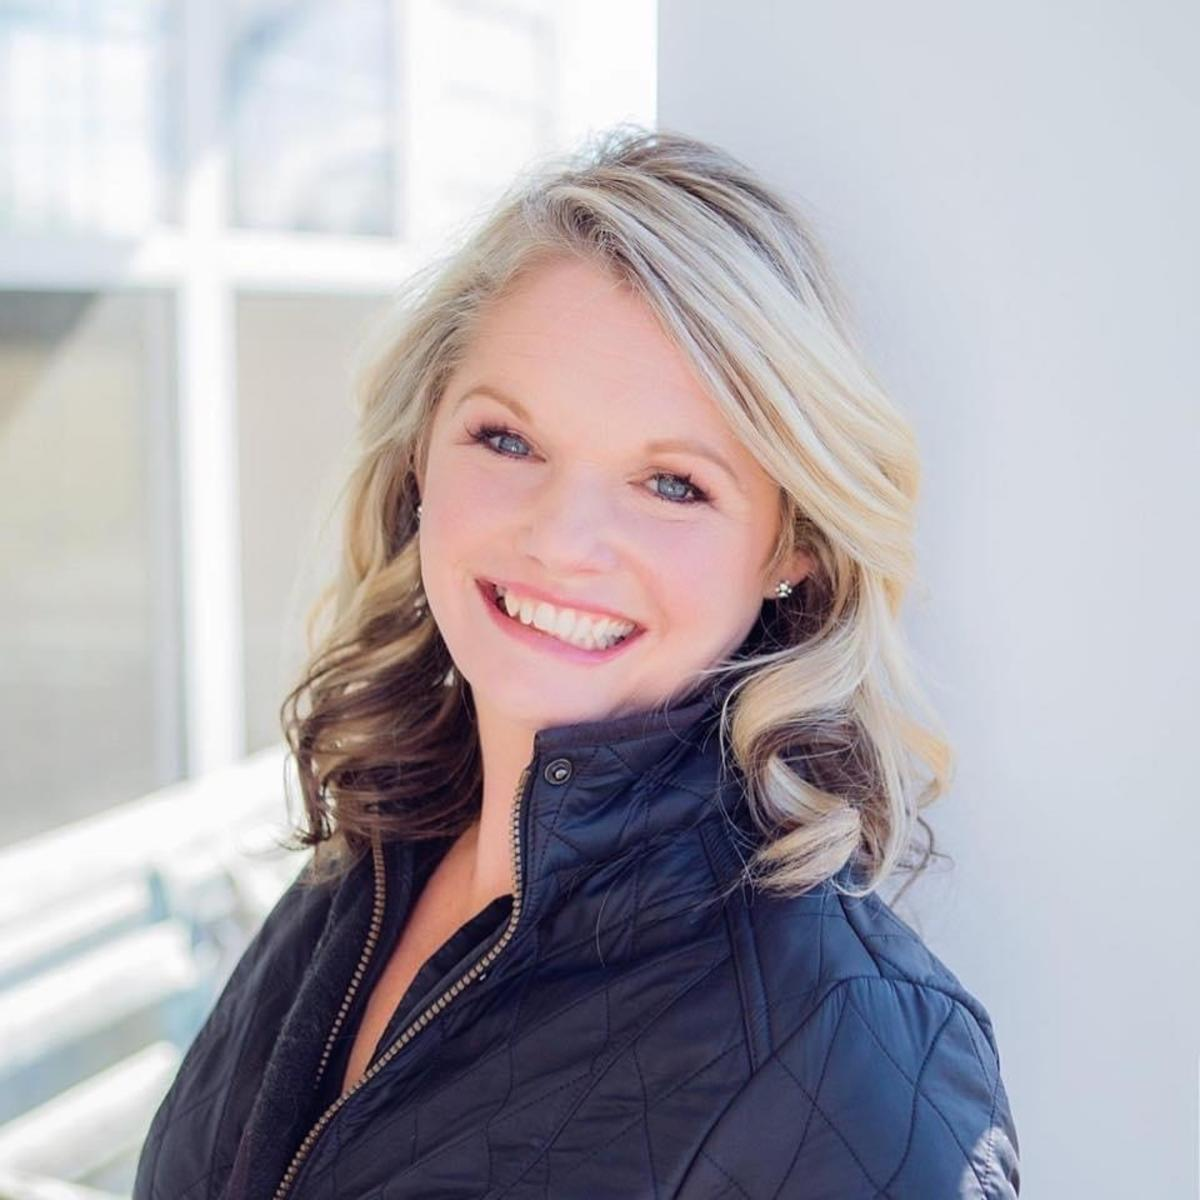 Colleen Gustavson is a real estate agent living in Purcellville.